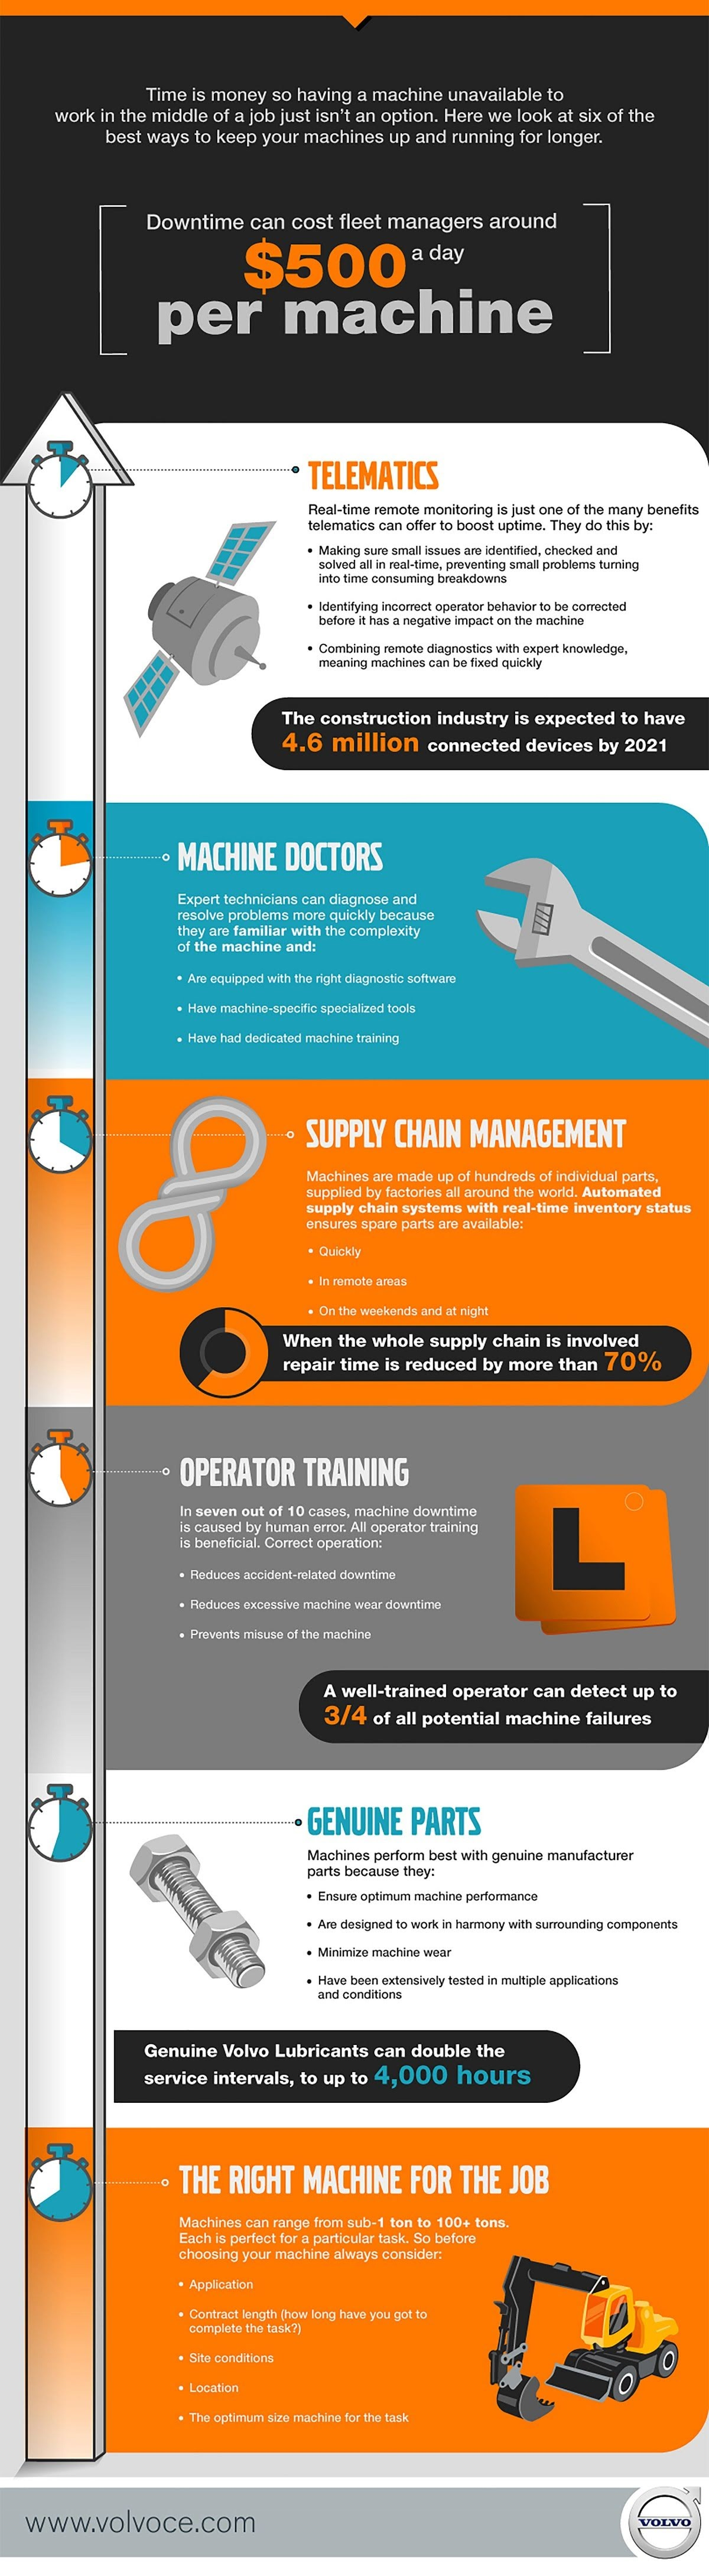 Six Ways To Increase Machine Uptime #Infographic